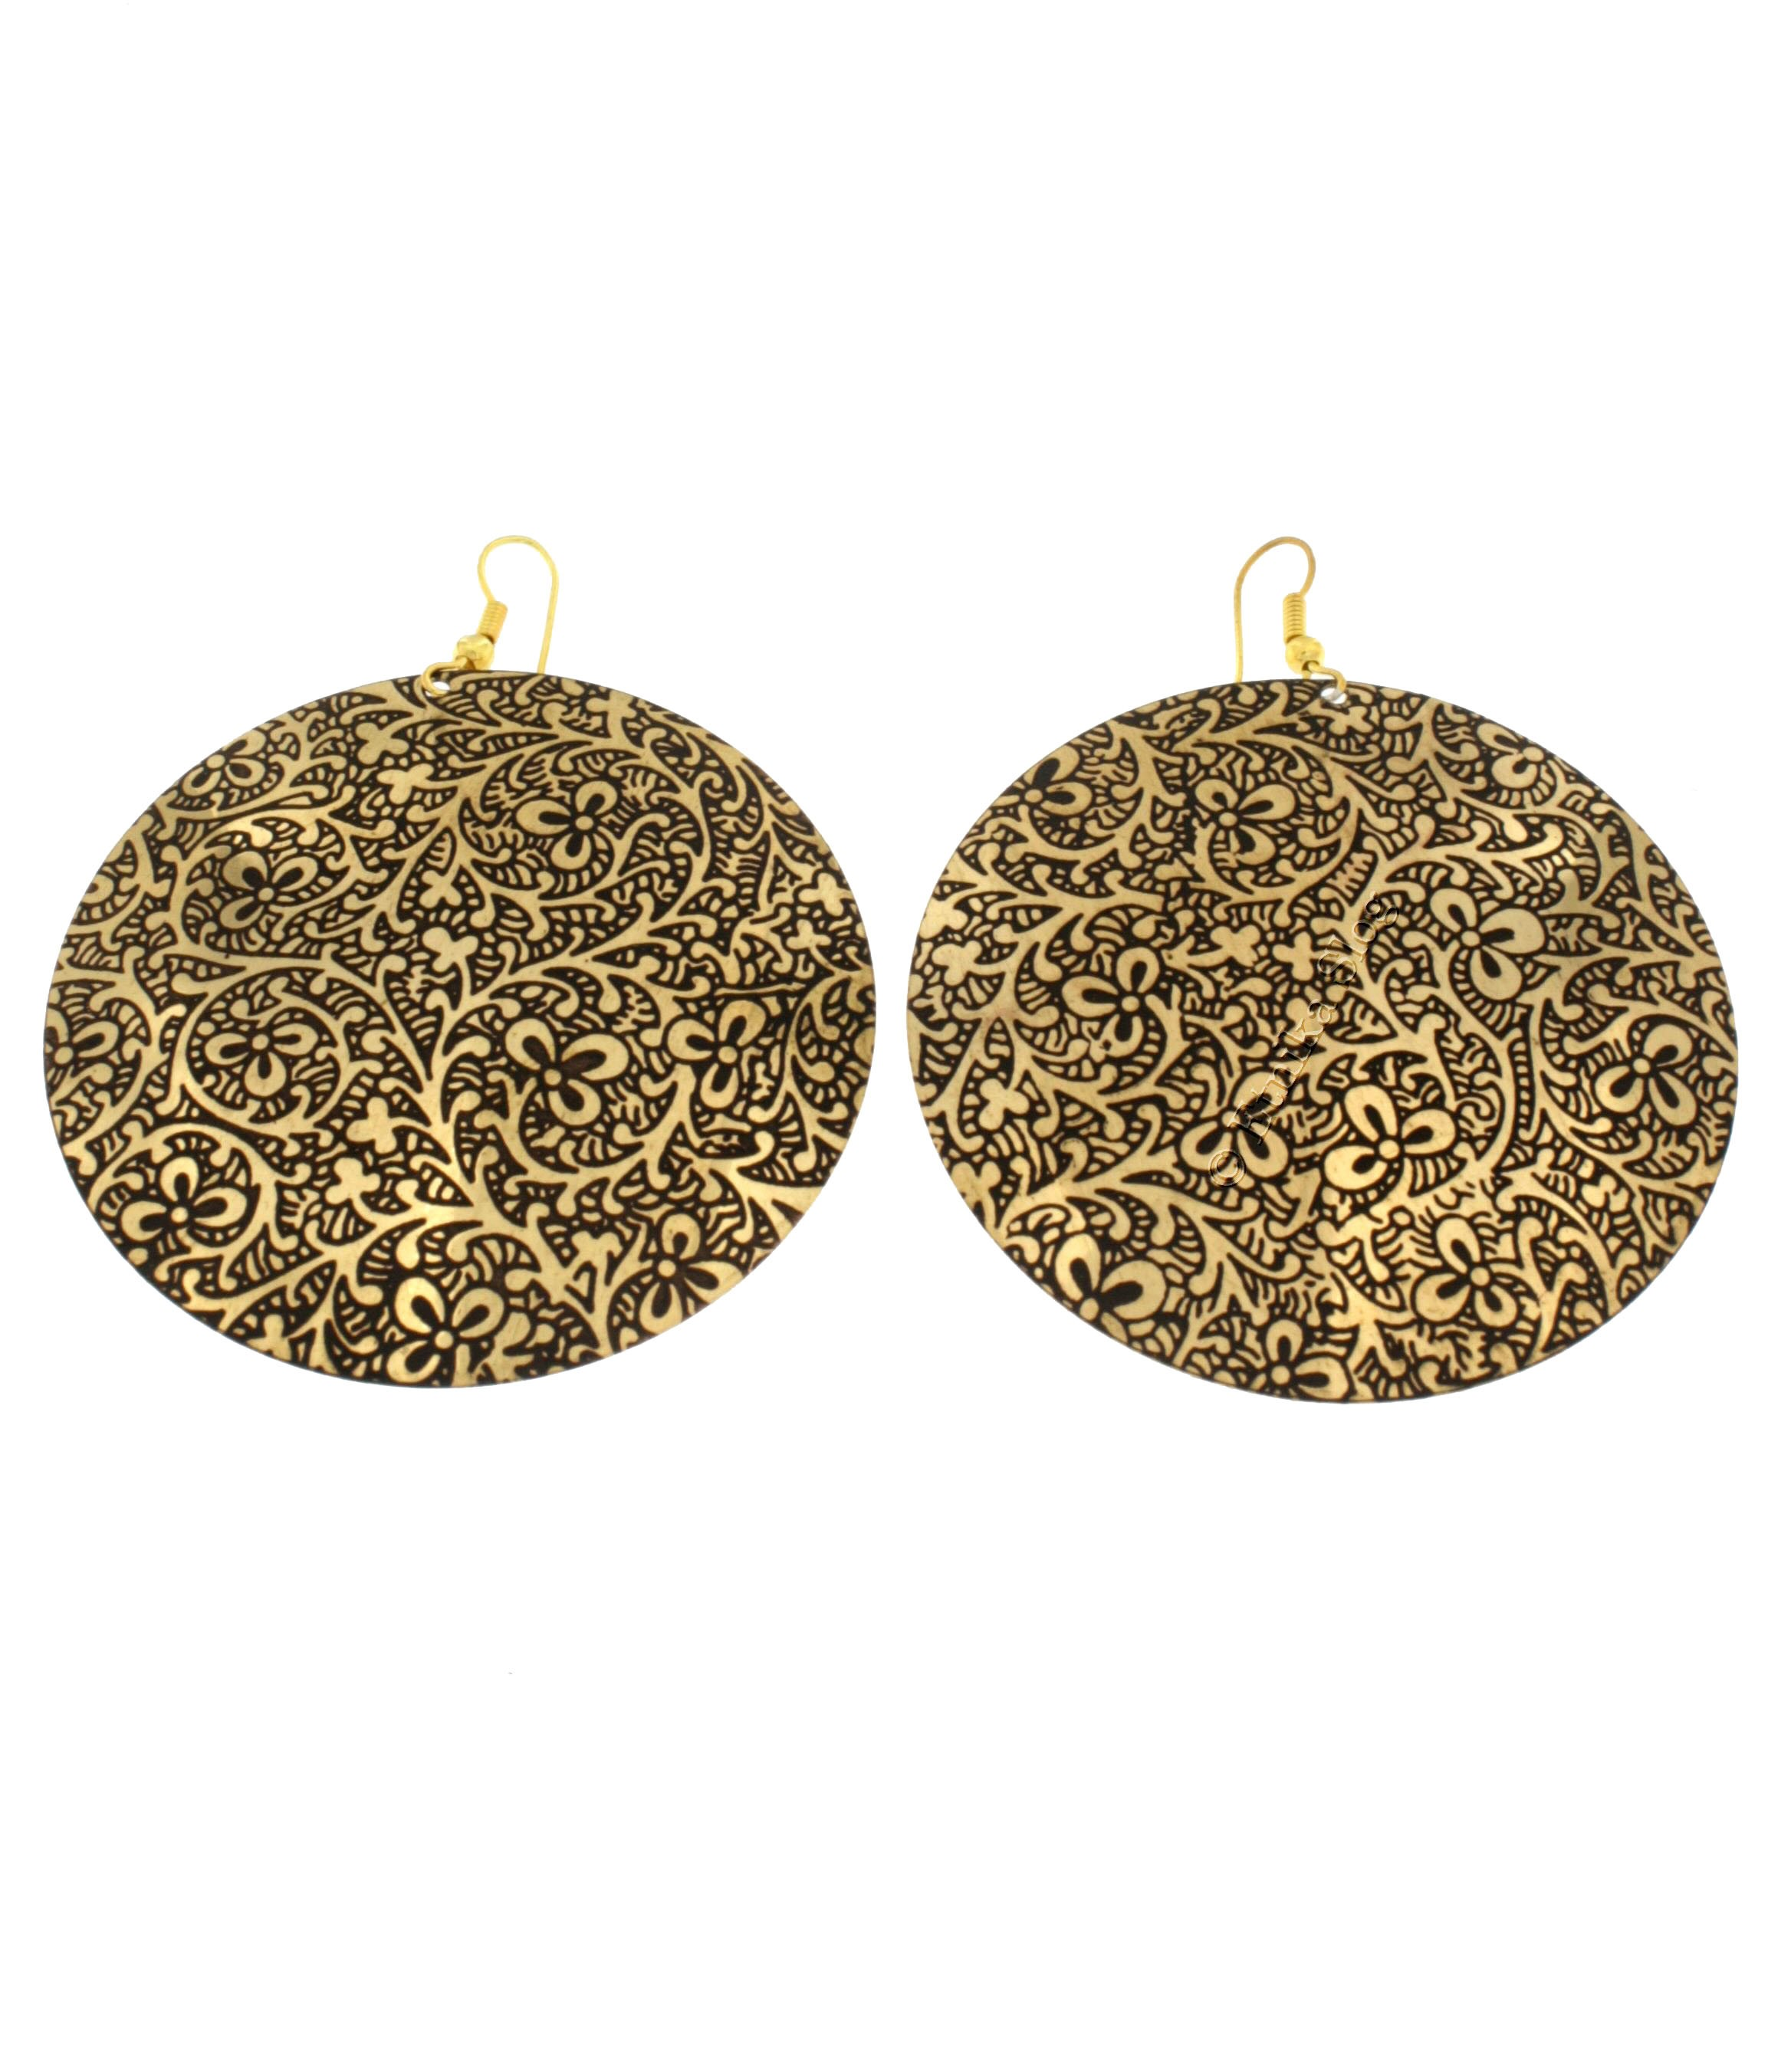 EARRINGS - METAL MB-OROT01-04 - Oriente Import S.r.l.